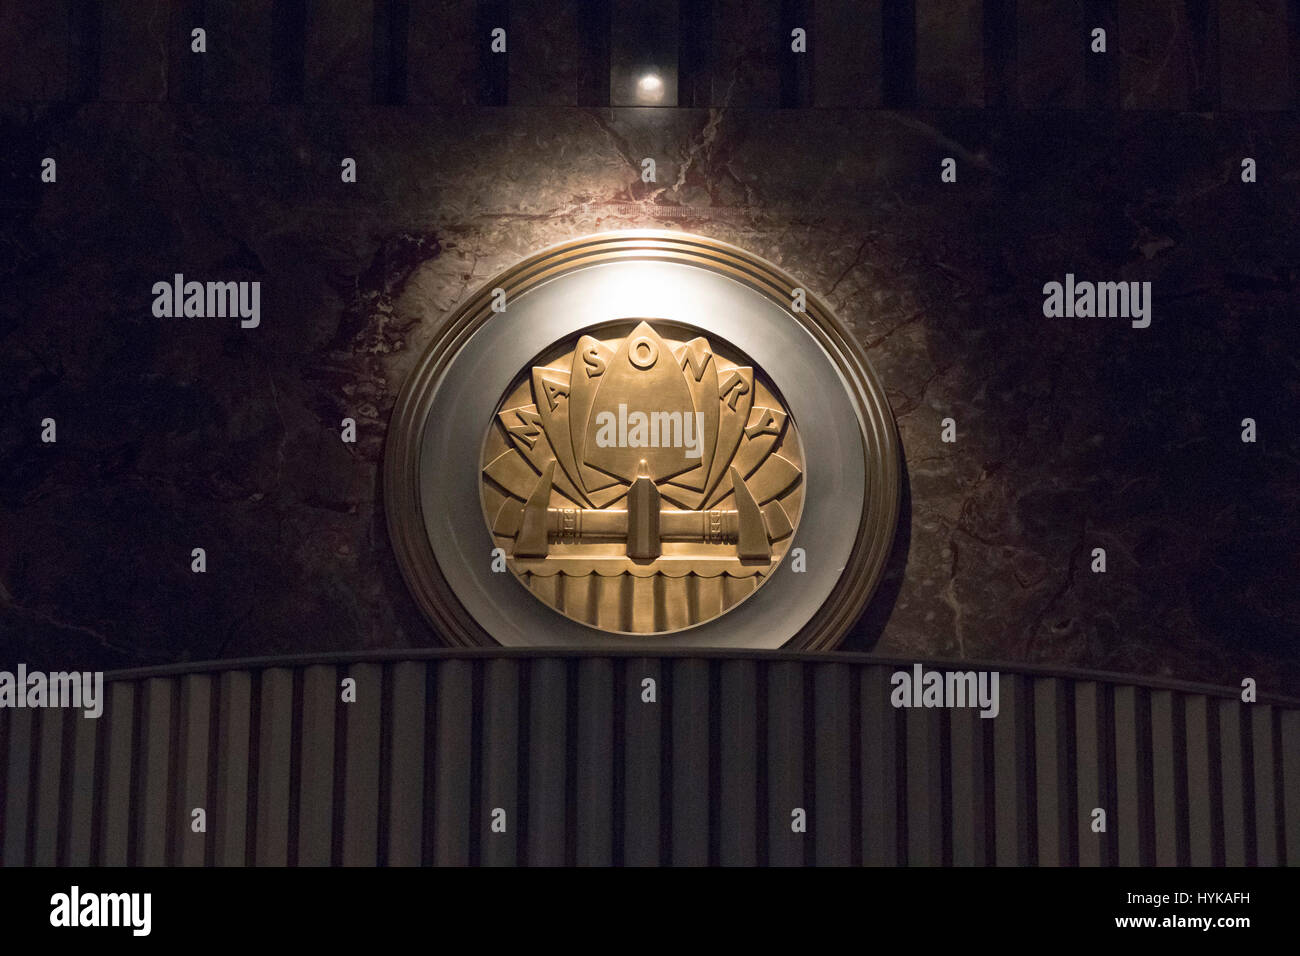 masonry emblem, lobby, Empire State Building, Manhattan, New York City, USA - Stock Image